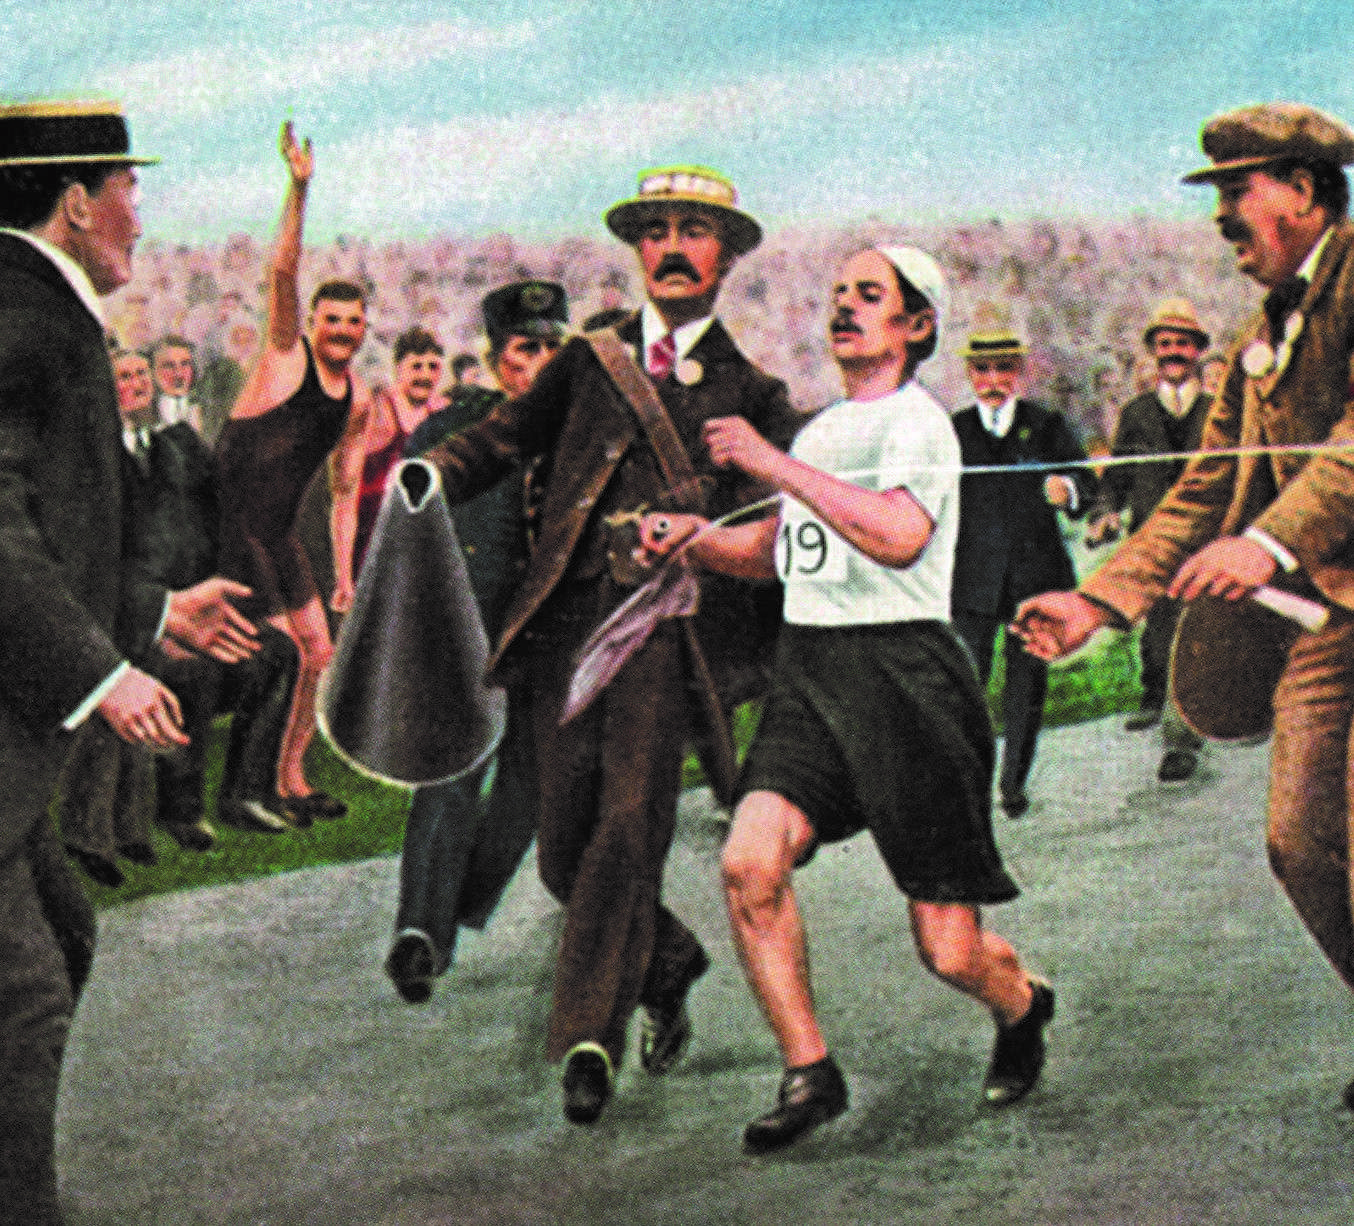 Artist's rendition of Italian Dorando Pietri, flanked by two officials, breaking the tape at the finish of the Olympic marathon in July 1908 in London. Pietri who collapsed 100m from the finish line and was helped up by officials, was later disqualified following protest from 19-year-old John Hayes of the U.S., who had finished second. Pietri was carried off to the hospital following the race and remained long hours between life and death before recovering. Four months later, Pietri beat Hayes by 45 seconds in a revenge marathon. / AFP PHOTO / -